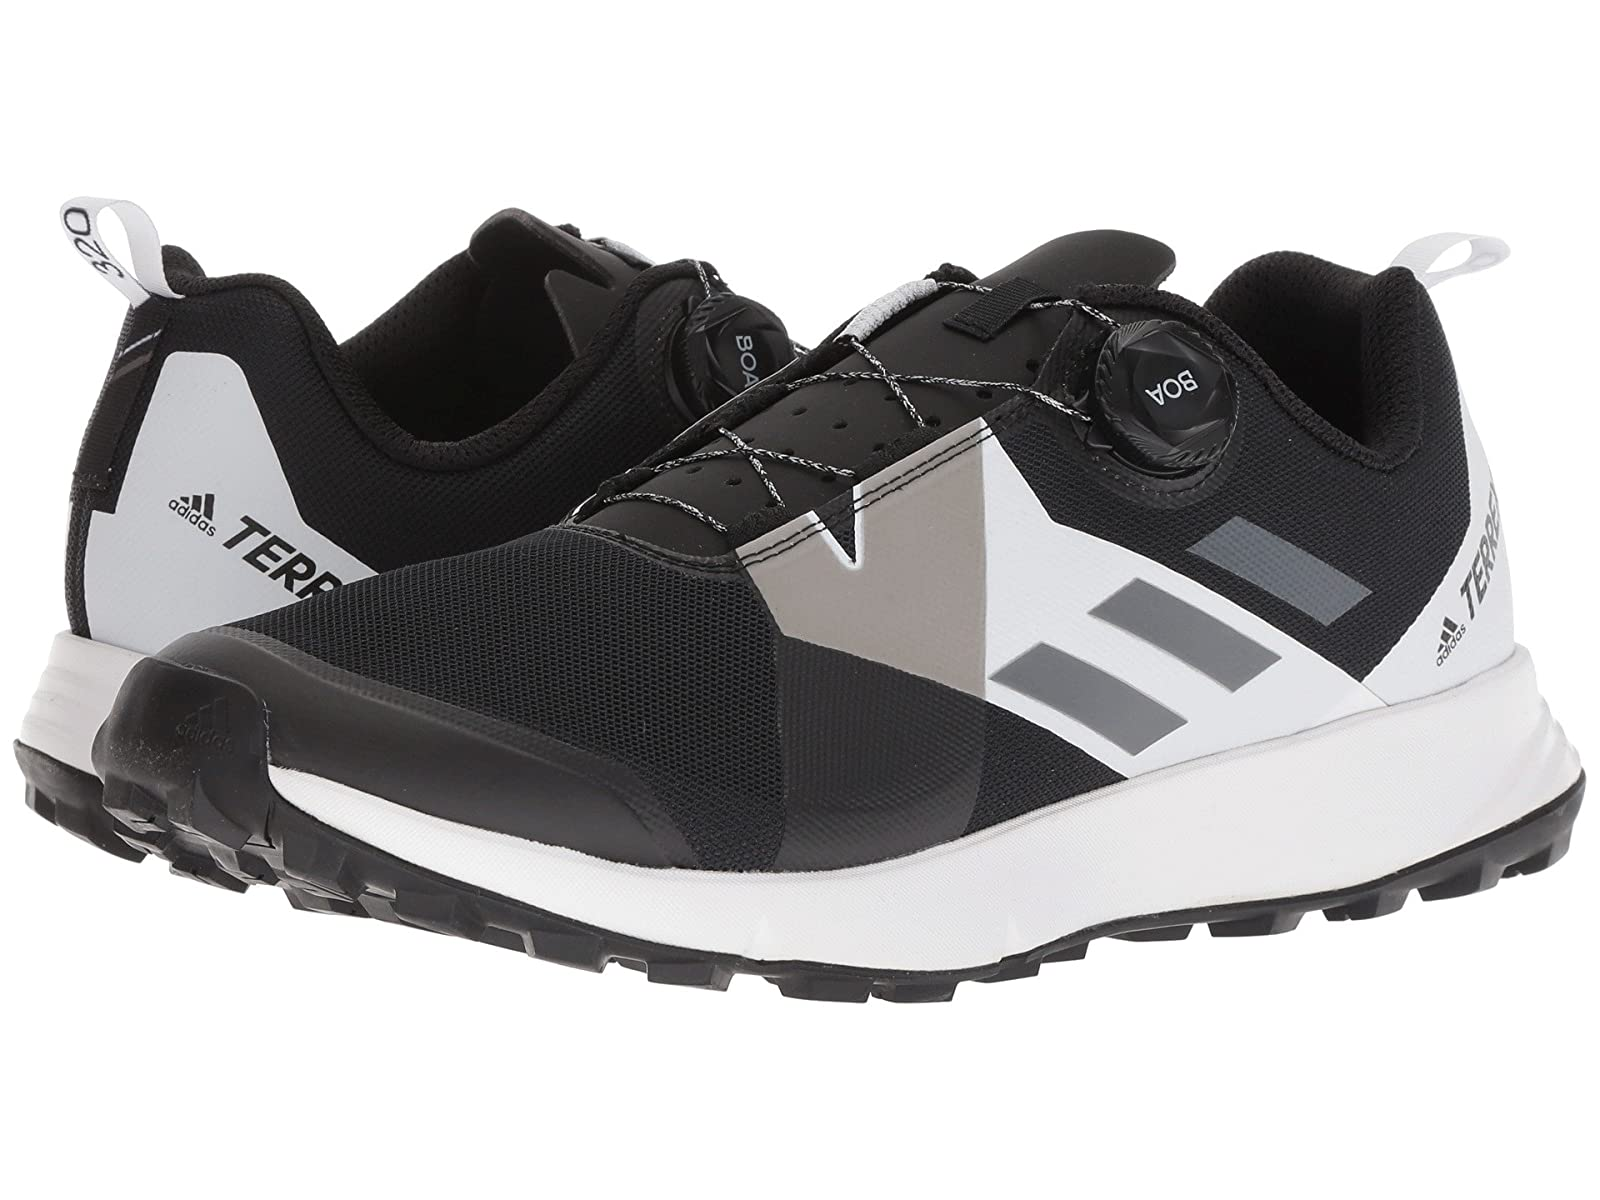 adidas Outdoor Terrex Two BOA®Atmospheric grades have affordable shoes